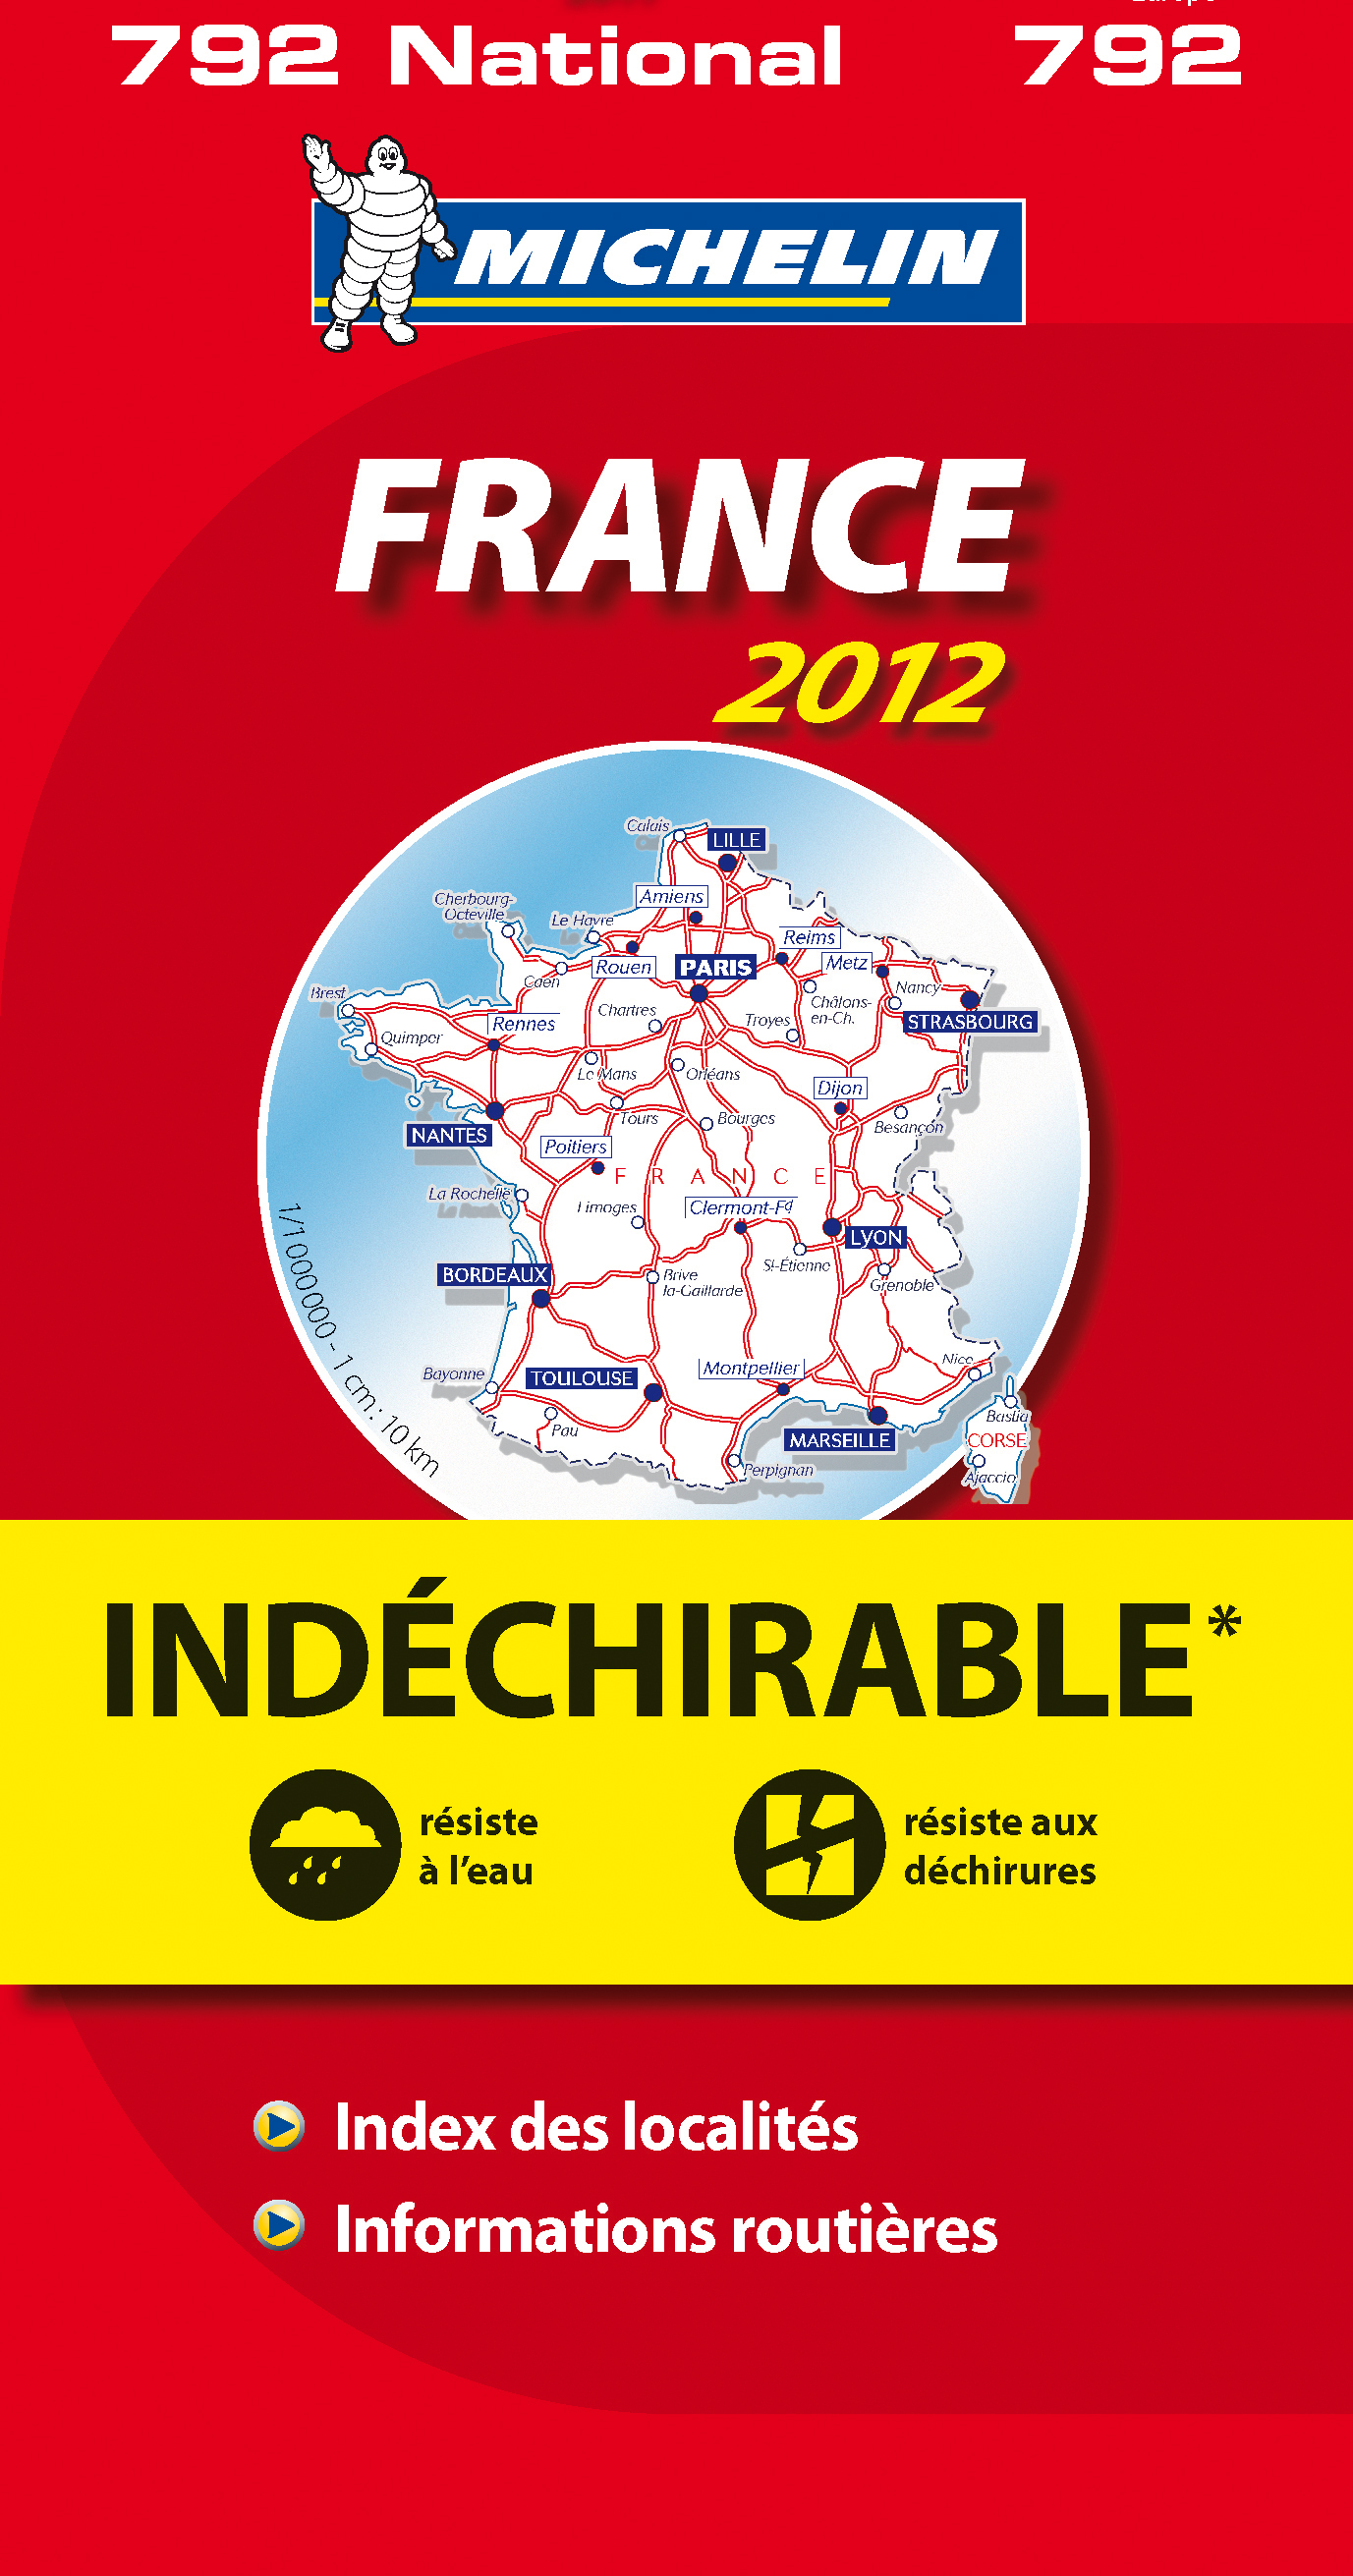 CN 792 FRANCE INDECHIRABLE 2012